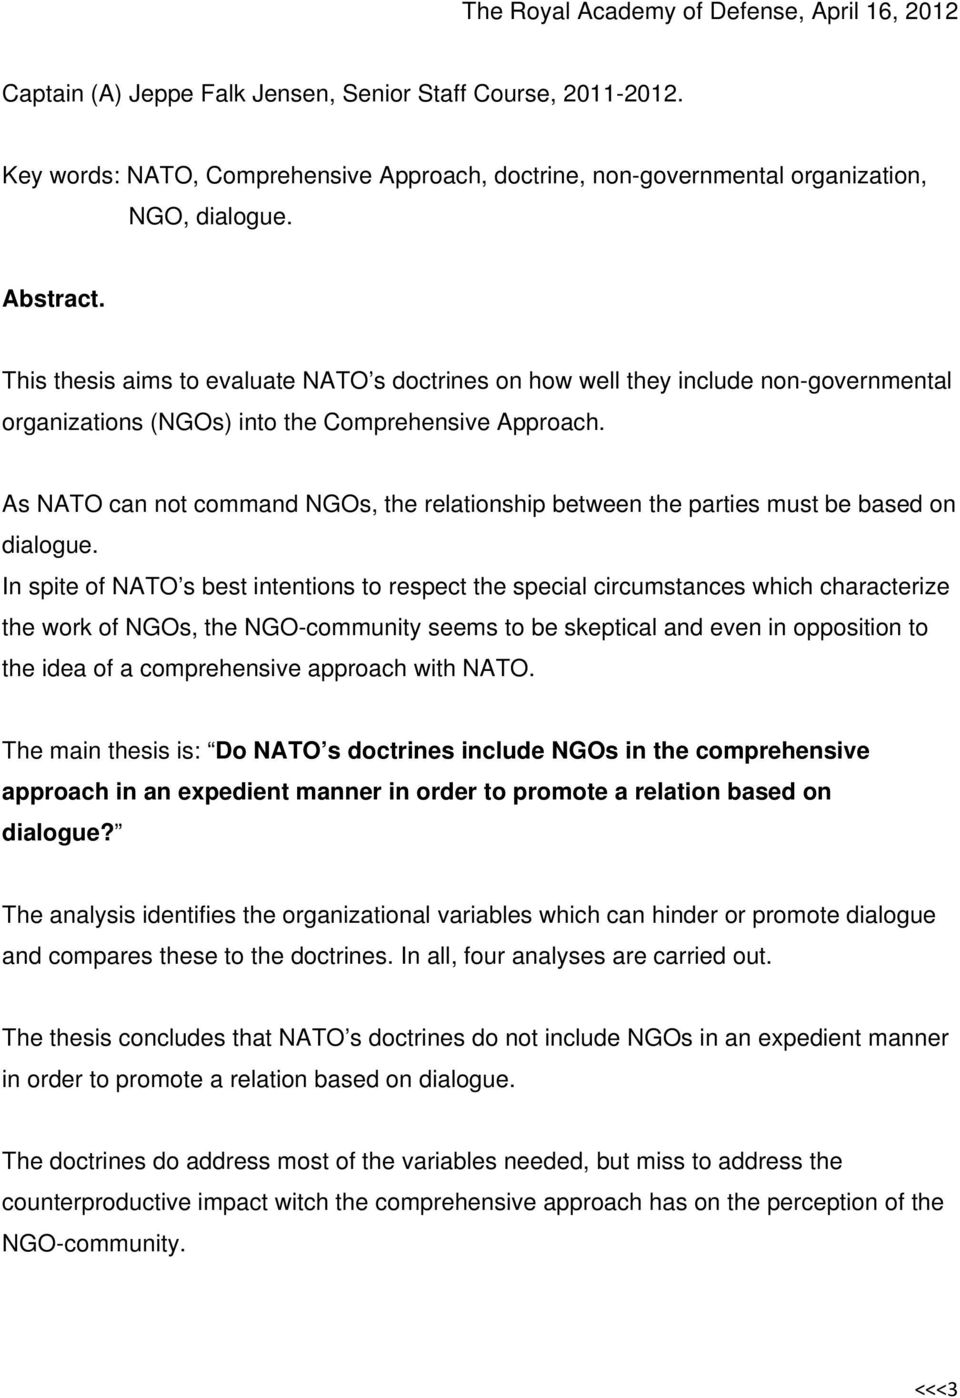 This thesis aims to evaluate NATO s doctrines on how well they include non-governmental organizations (NGOs) into the Comprehensive Approach.